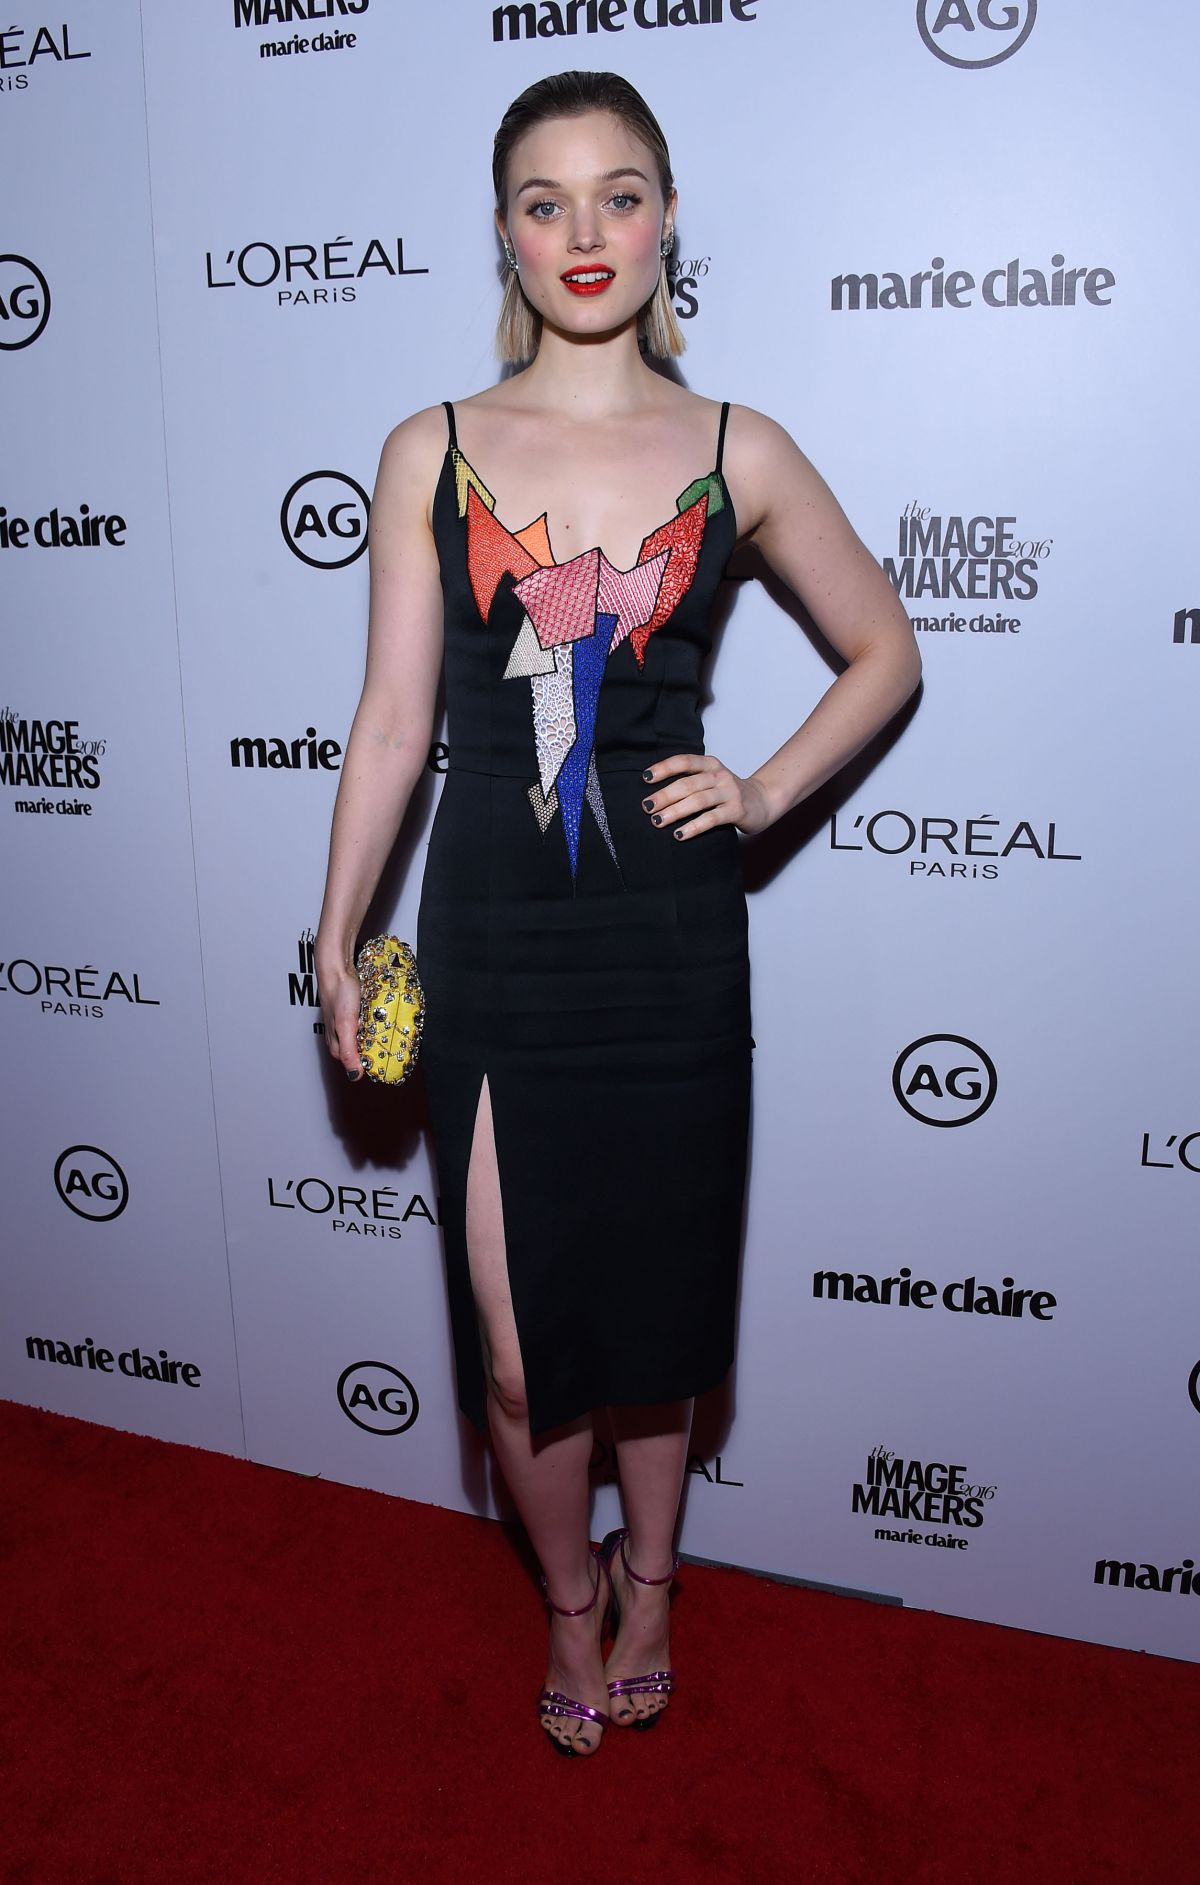 Bella Heathcote At Inaugural Image Maker Awards In LA